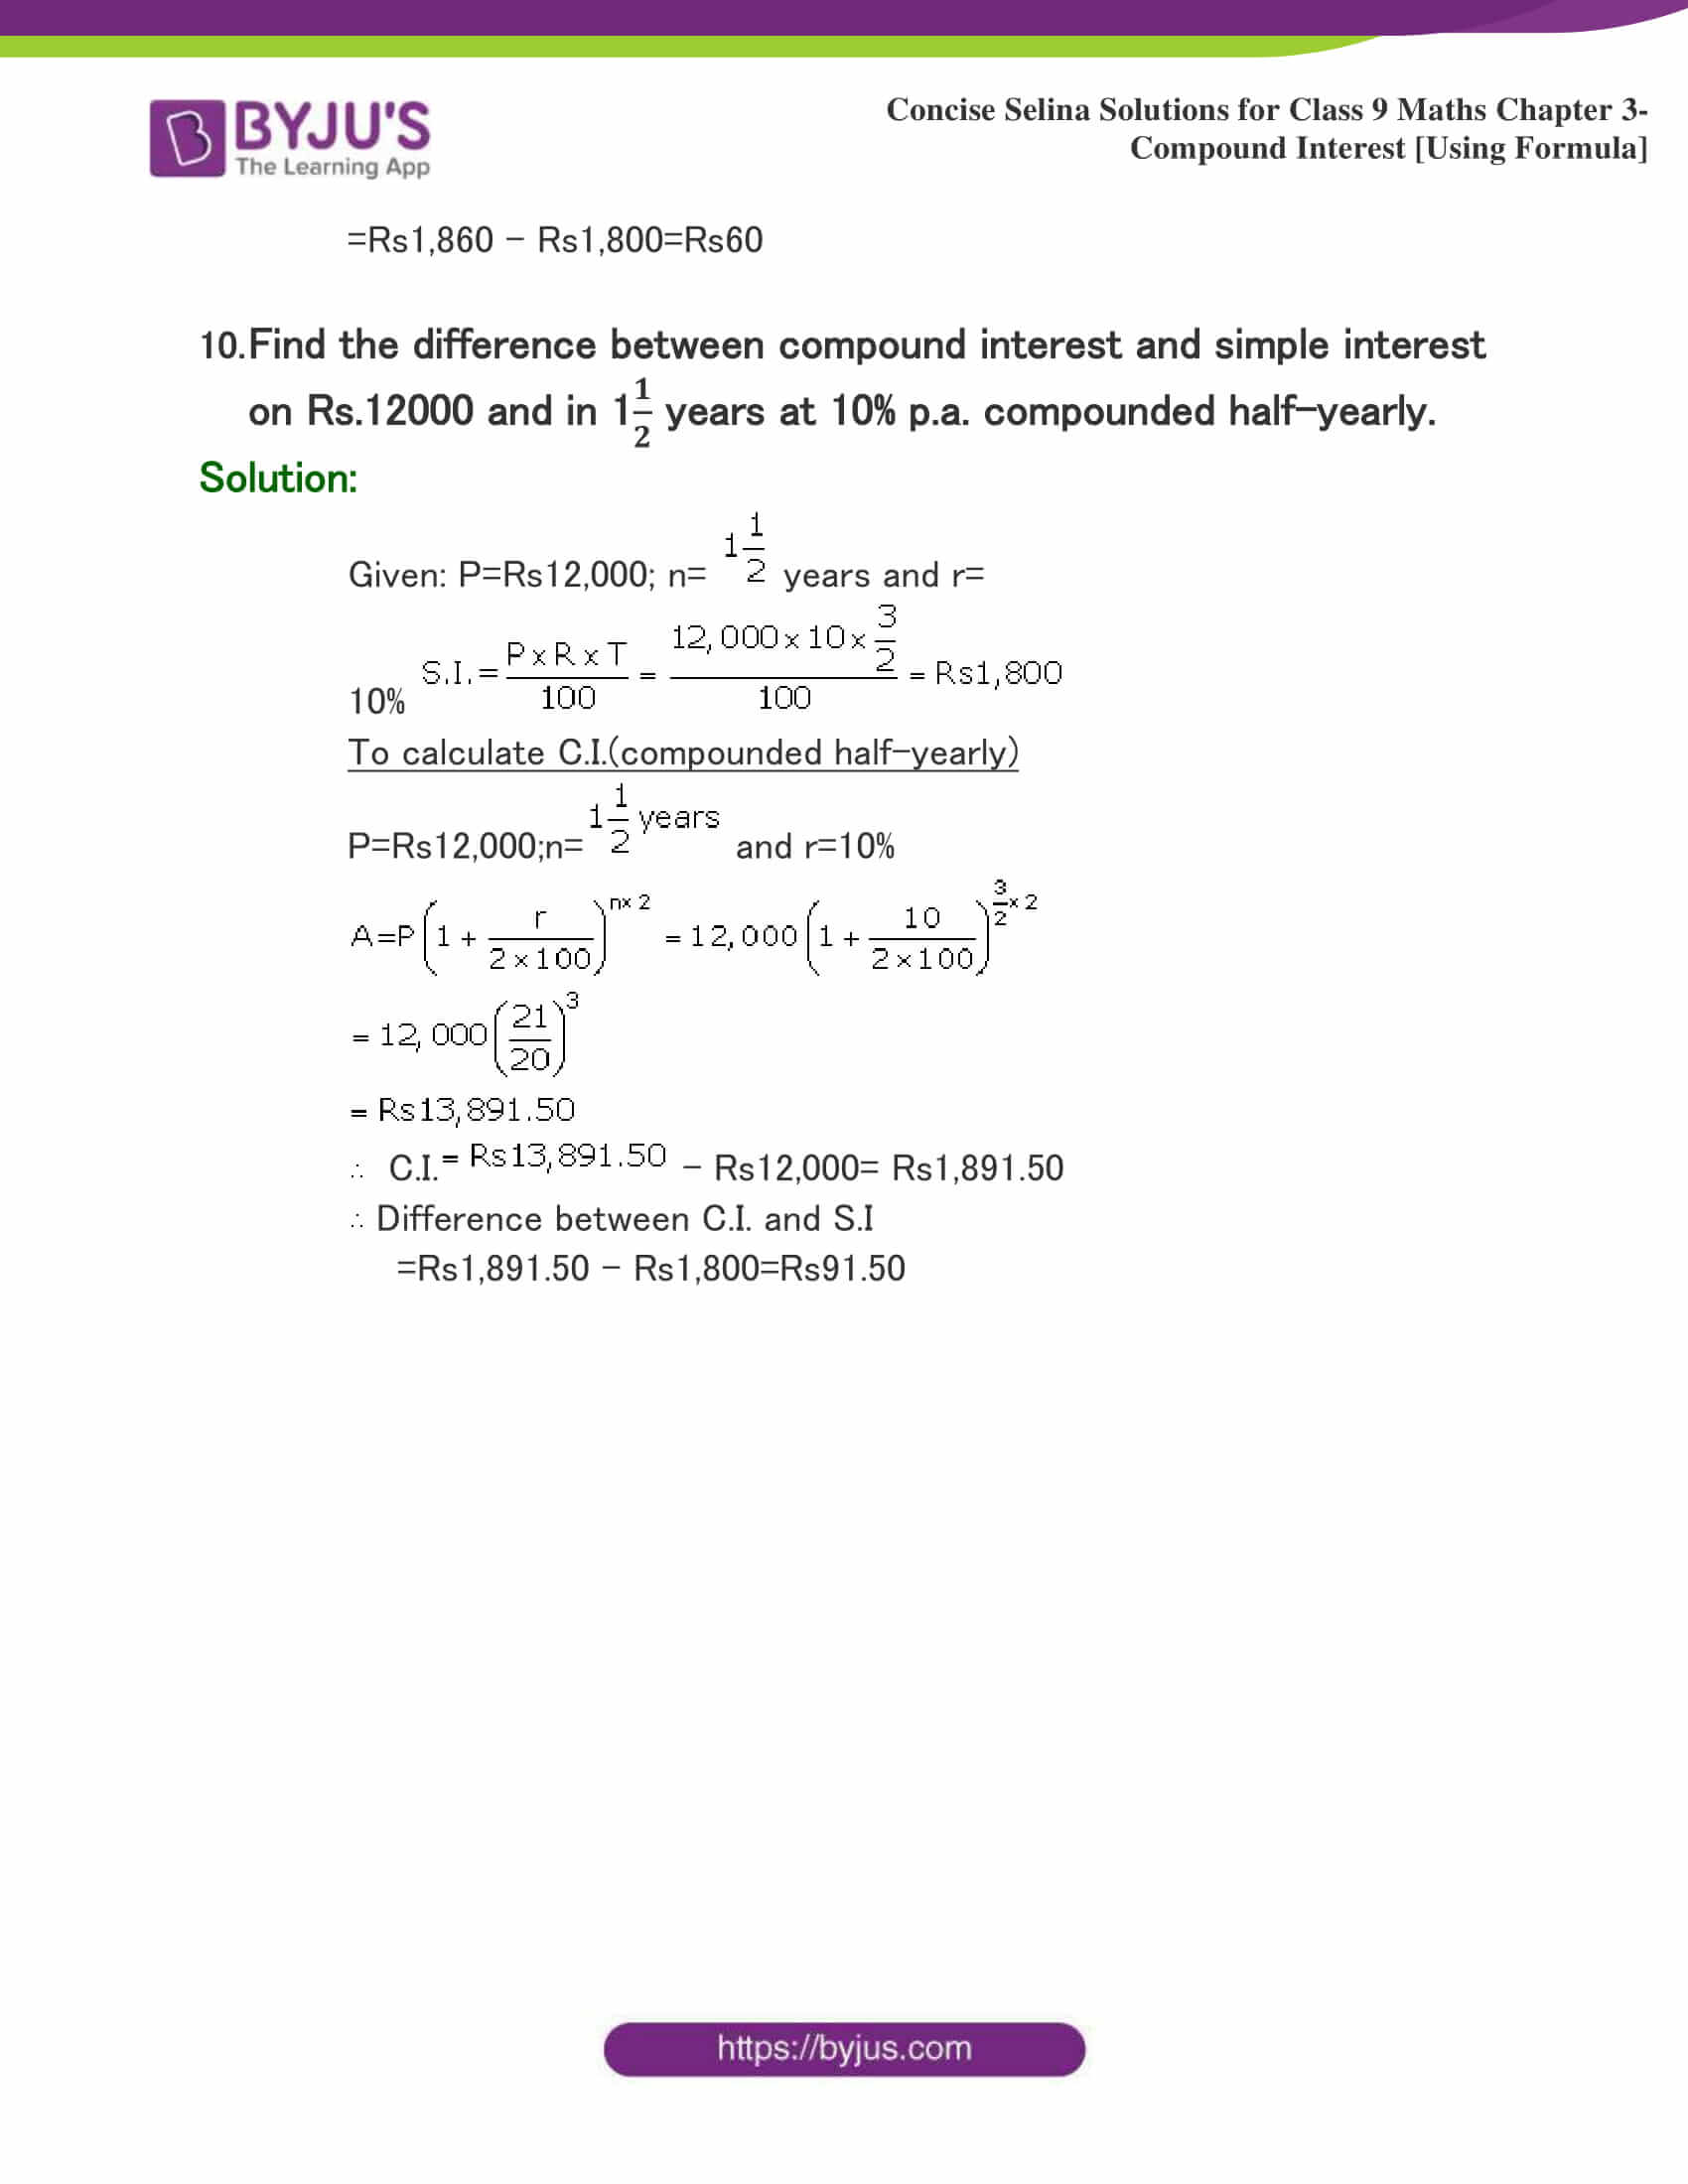 Selina Solutions Class 9 Maths Chapter 3 Compound Interest Using Formula part 28